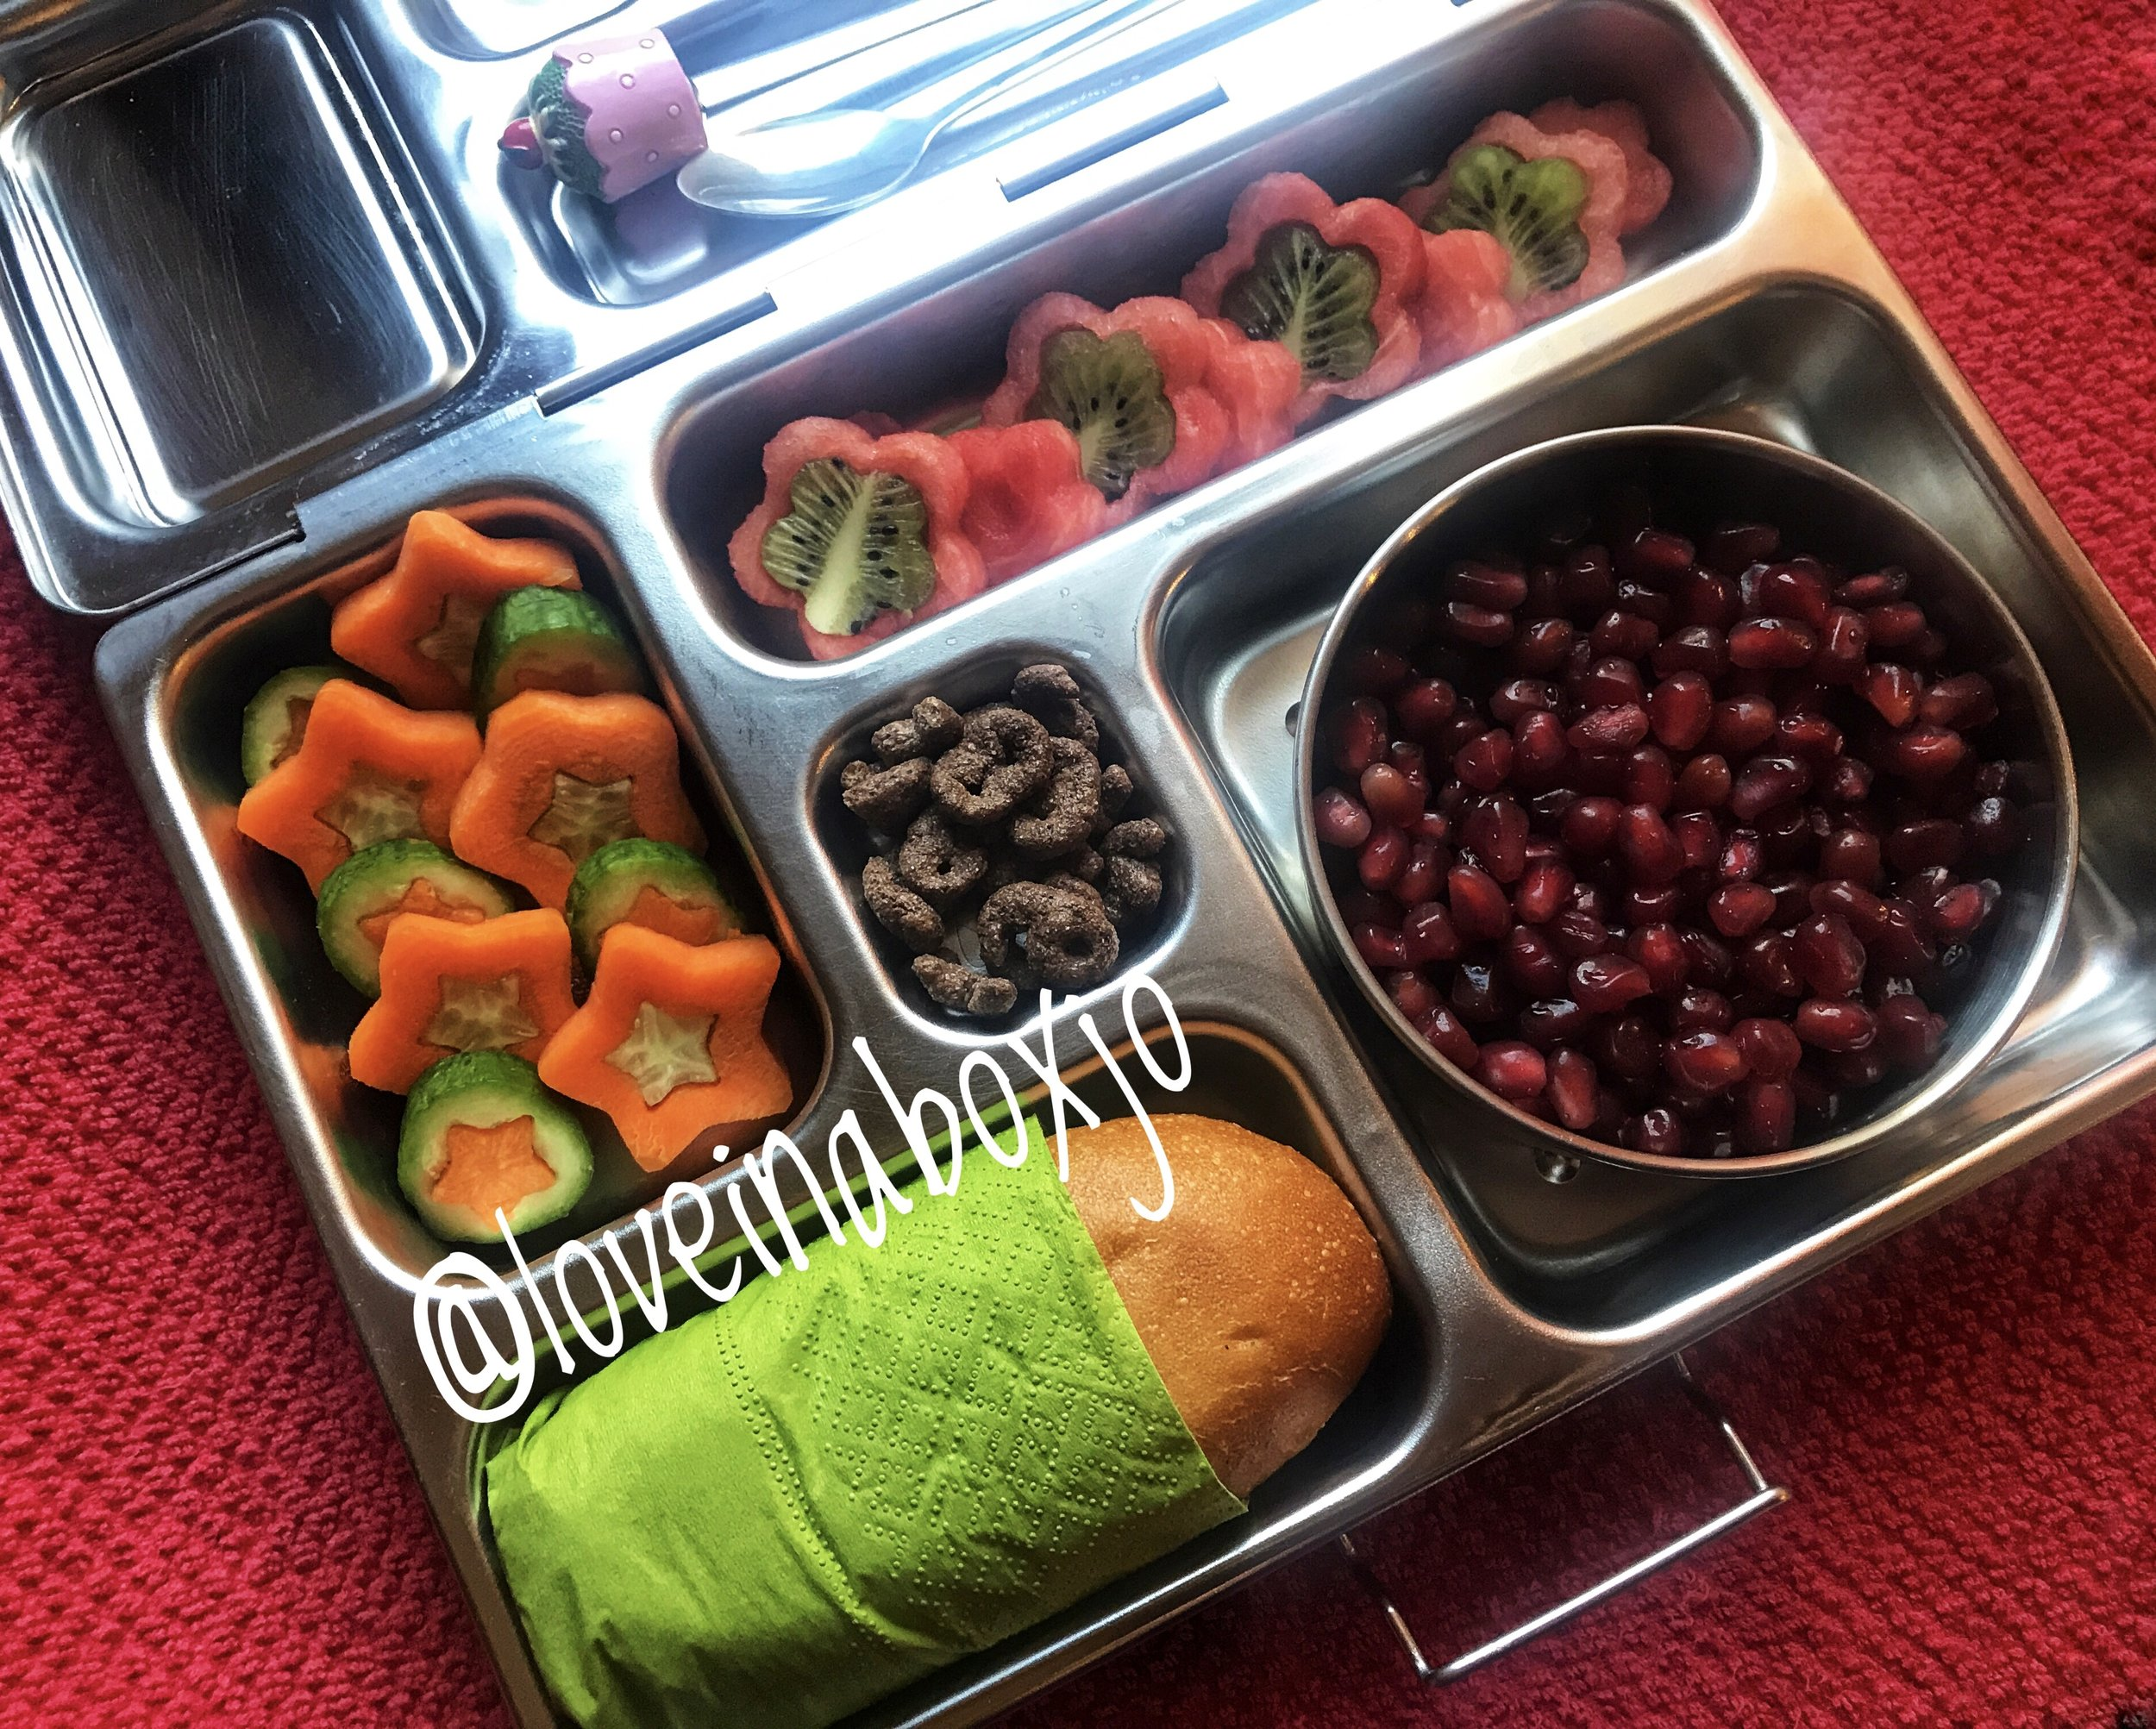 Lunch box - By Love in a box jo